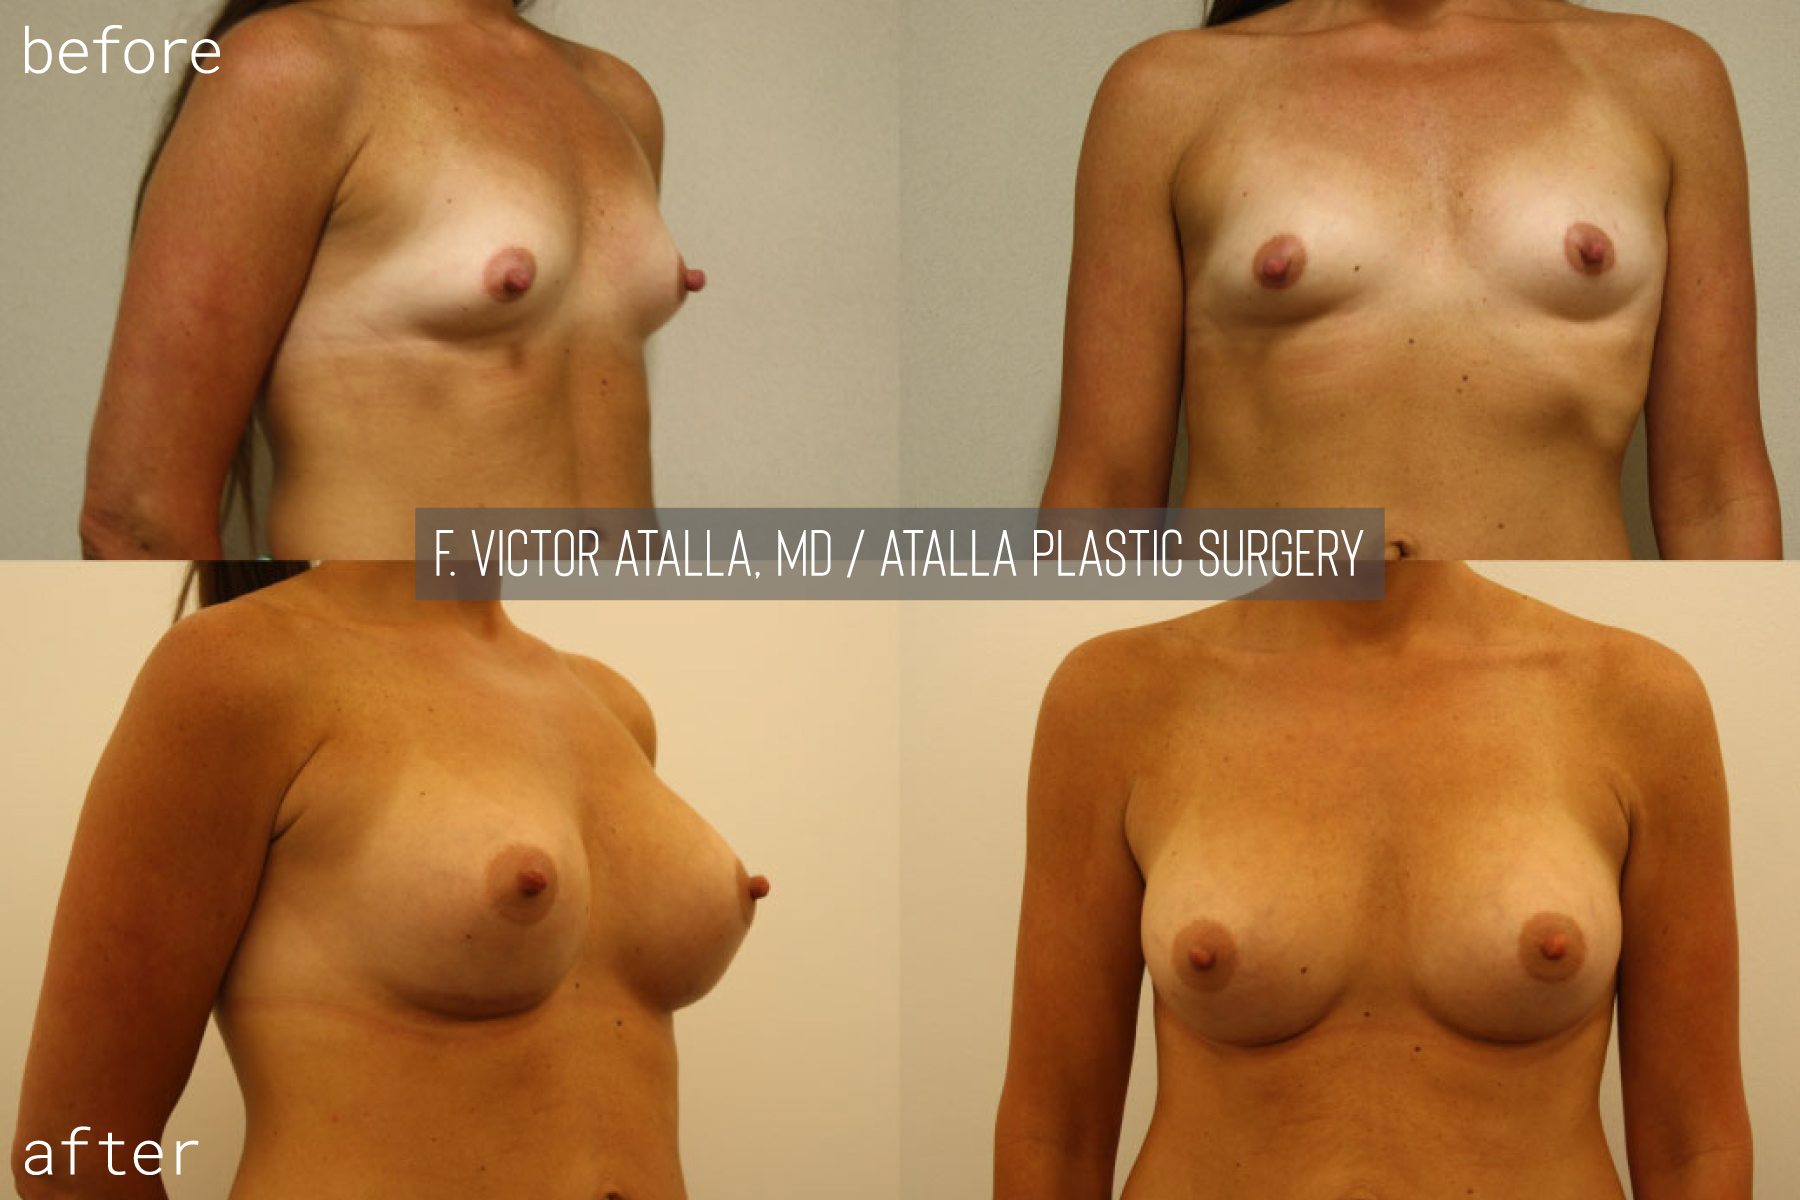 34 year old female | six months status post, 375cc smooth, round submuscular gel implants